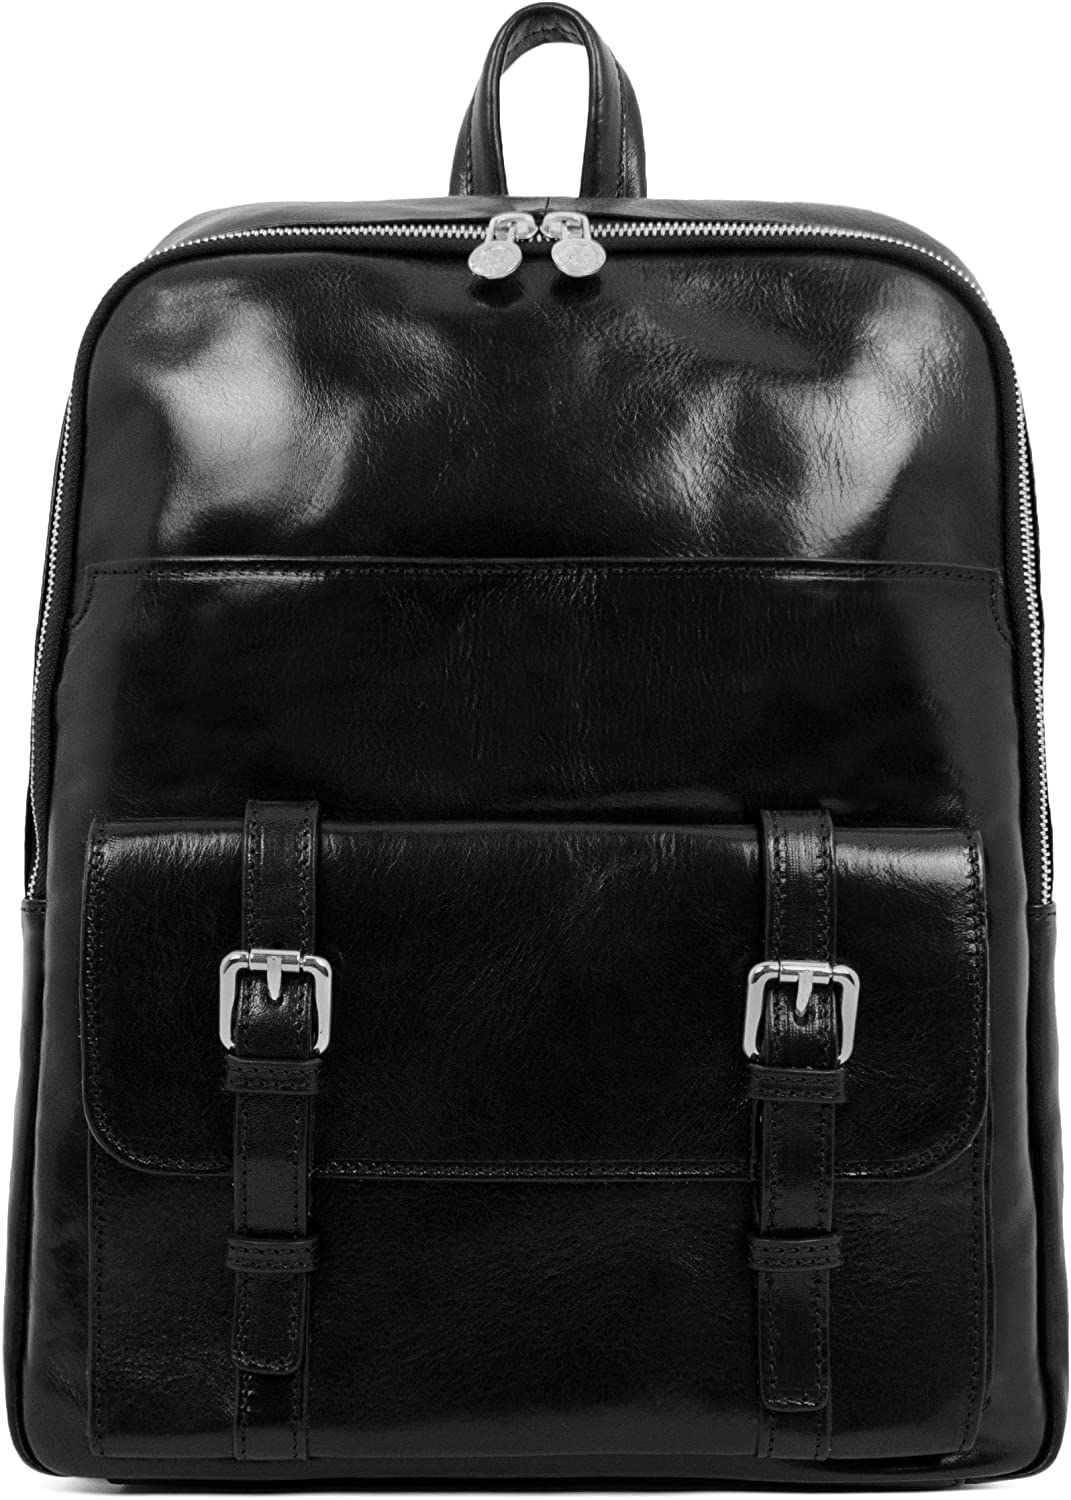 Leather Backpack Vintage Rucksack Purse for to 15 B Discount is also underway Laptop in up Our shop most popular